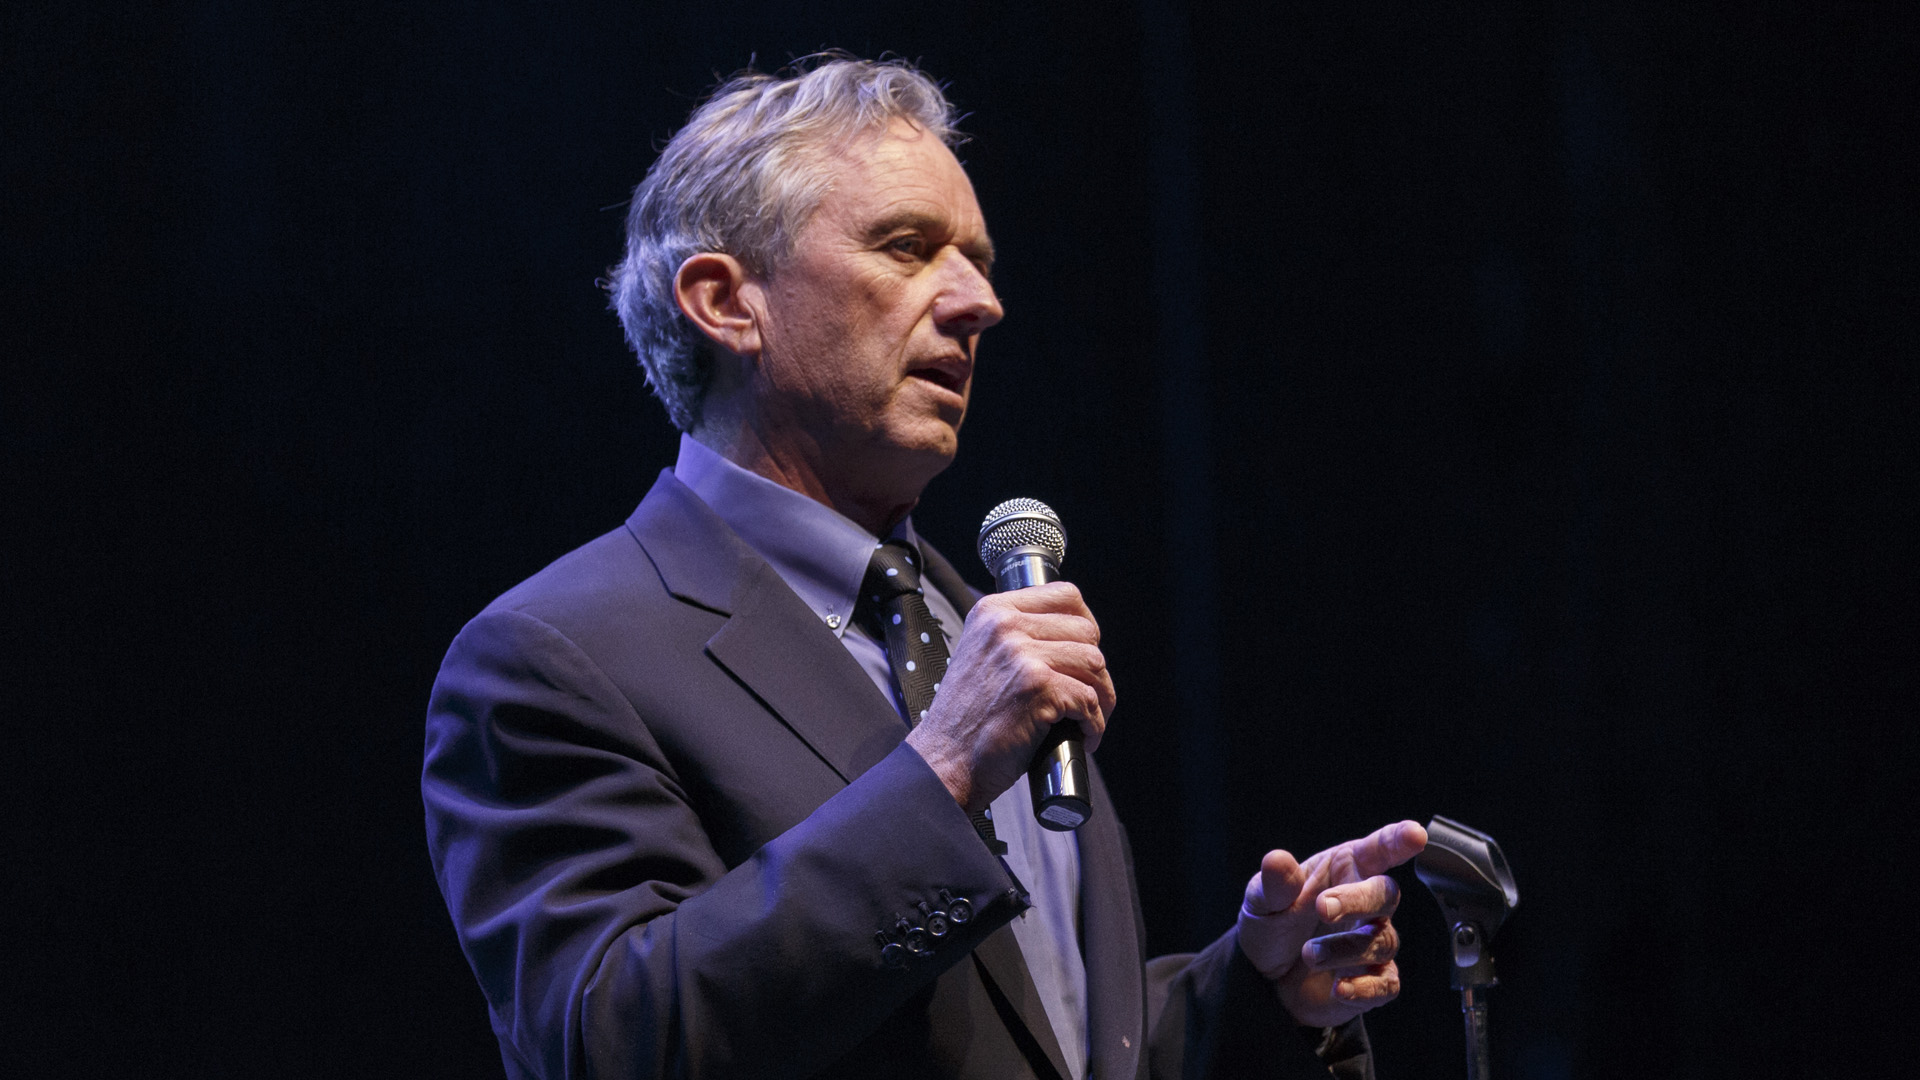 Robert F. Kennedy, Jr. speaks on stage at the Keep It Clean To Benefit Waterkeeper Alliance Live Earth Day Comedy Benefit on April 22, 2015 in Los Angeles, California. (Credit: Rich Polk/Getty Images for Waterkeeper Alliance)